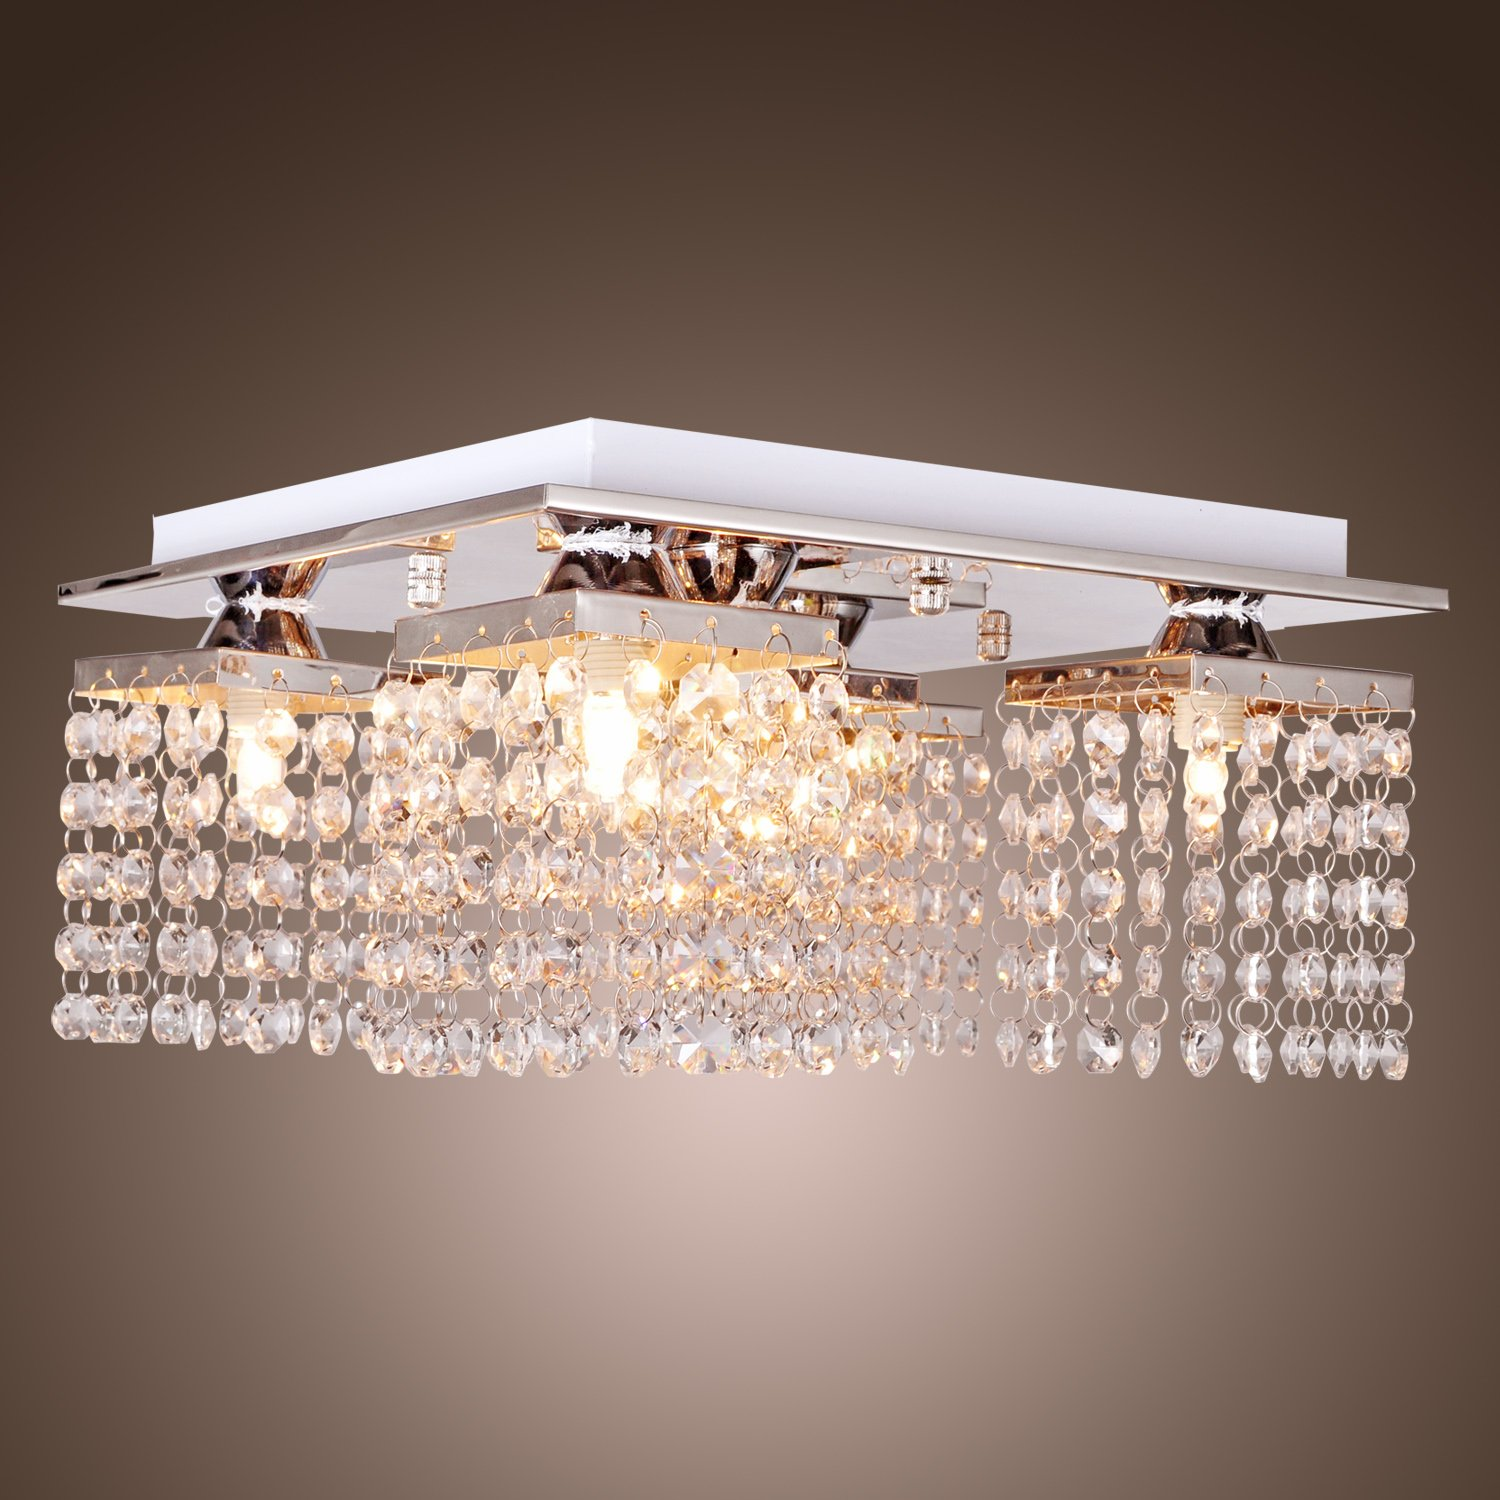 Lightinthebox crystal ceiling light with 5 lights electroplated finish modern flush mount ceiling lights fixture for hallway bedroom living room with